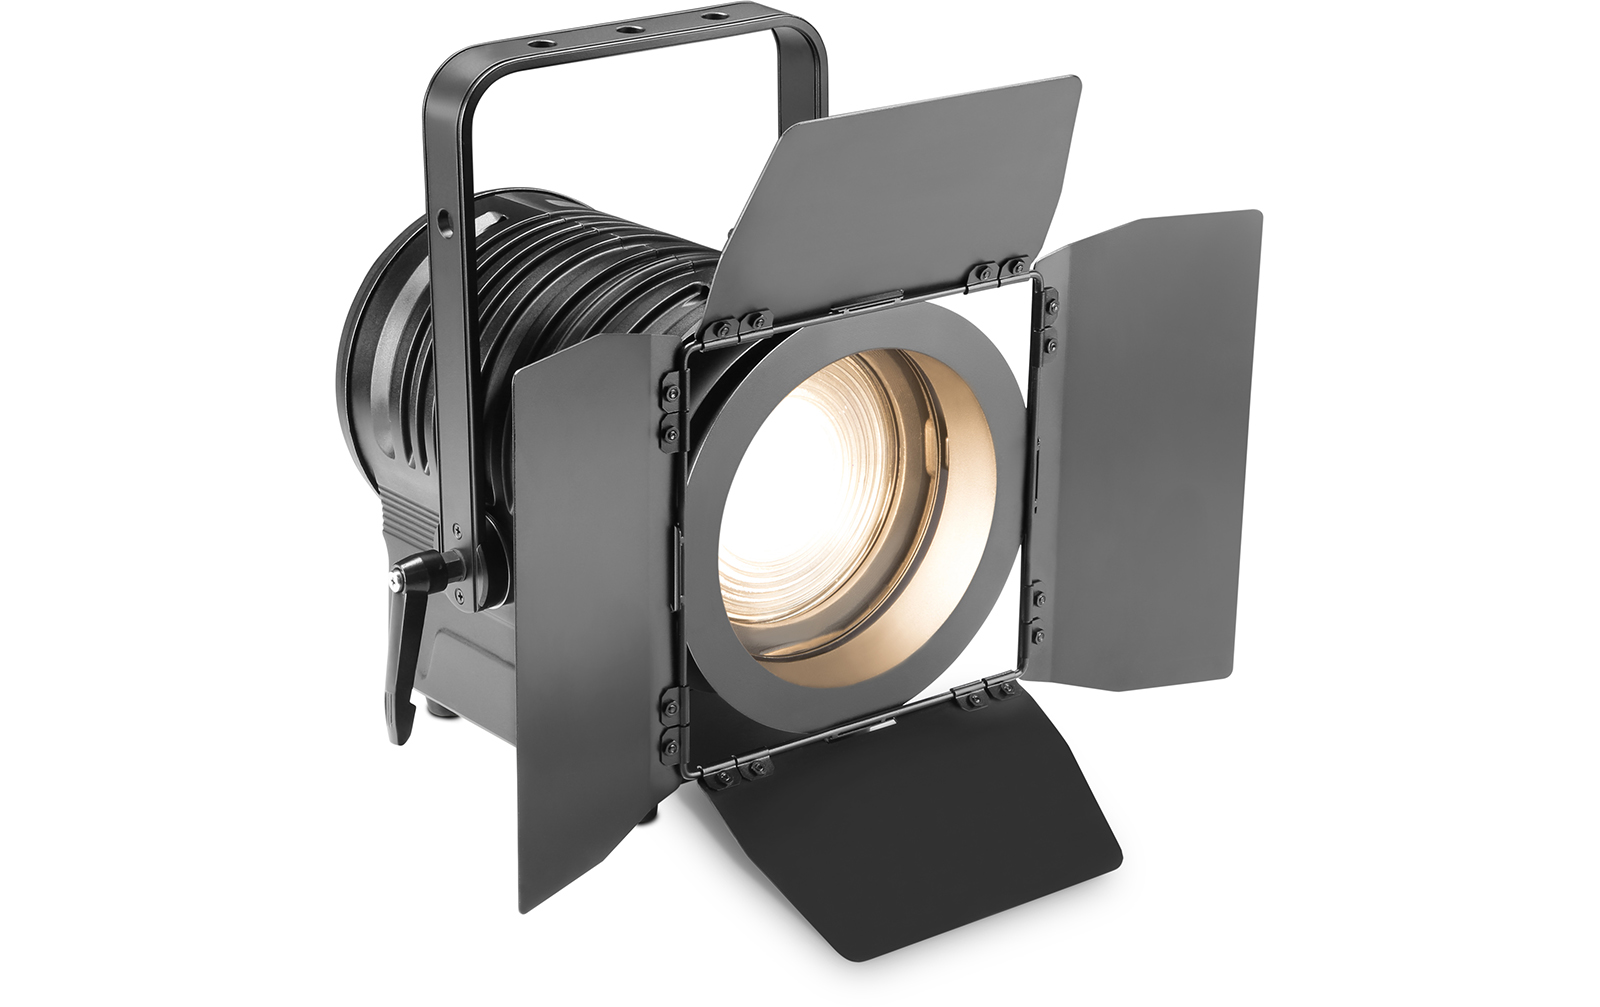 cameo-ts-200-ww-theater-spot-mit-fresnel-linse-und-warmweiayer-180-w-led-in-schwarzem-geha-use